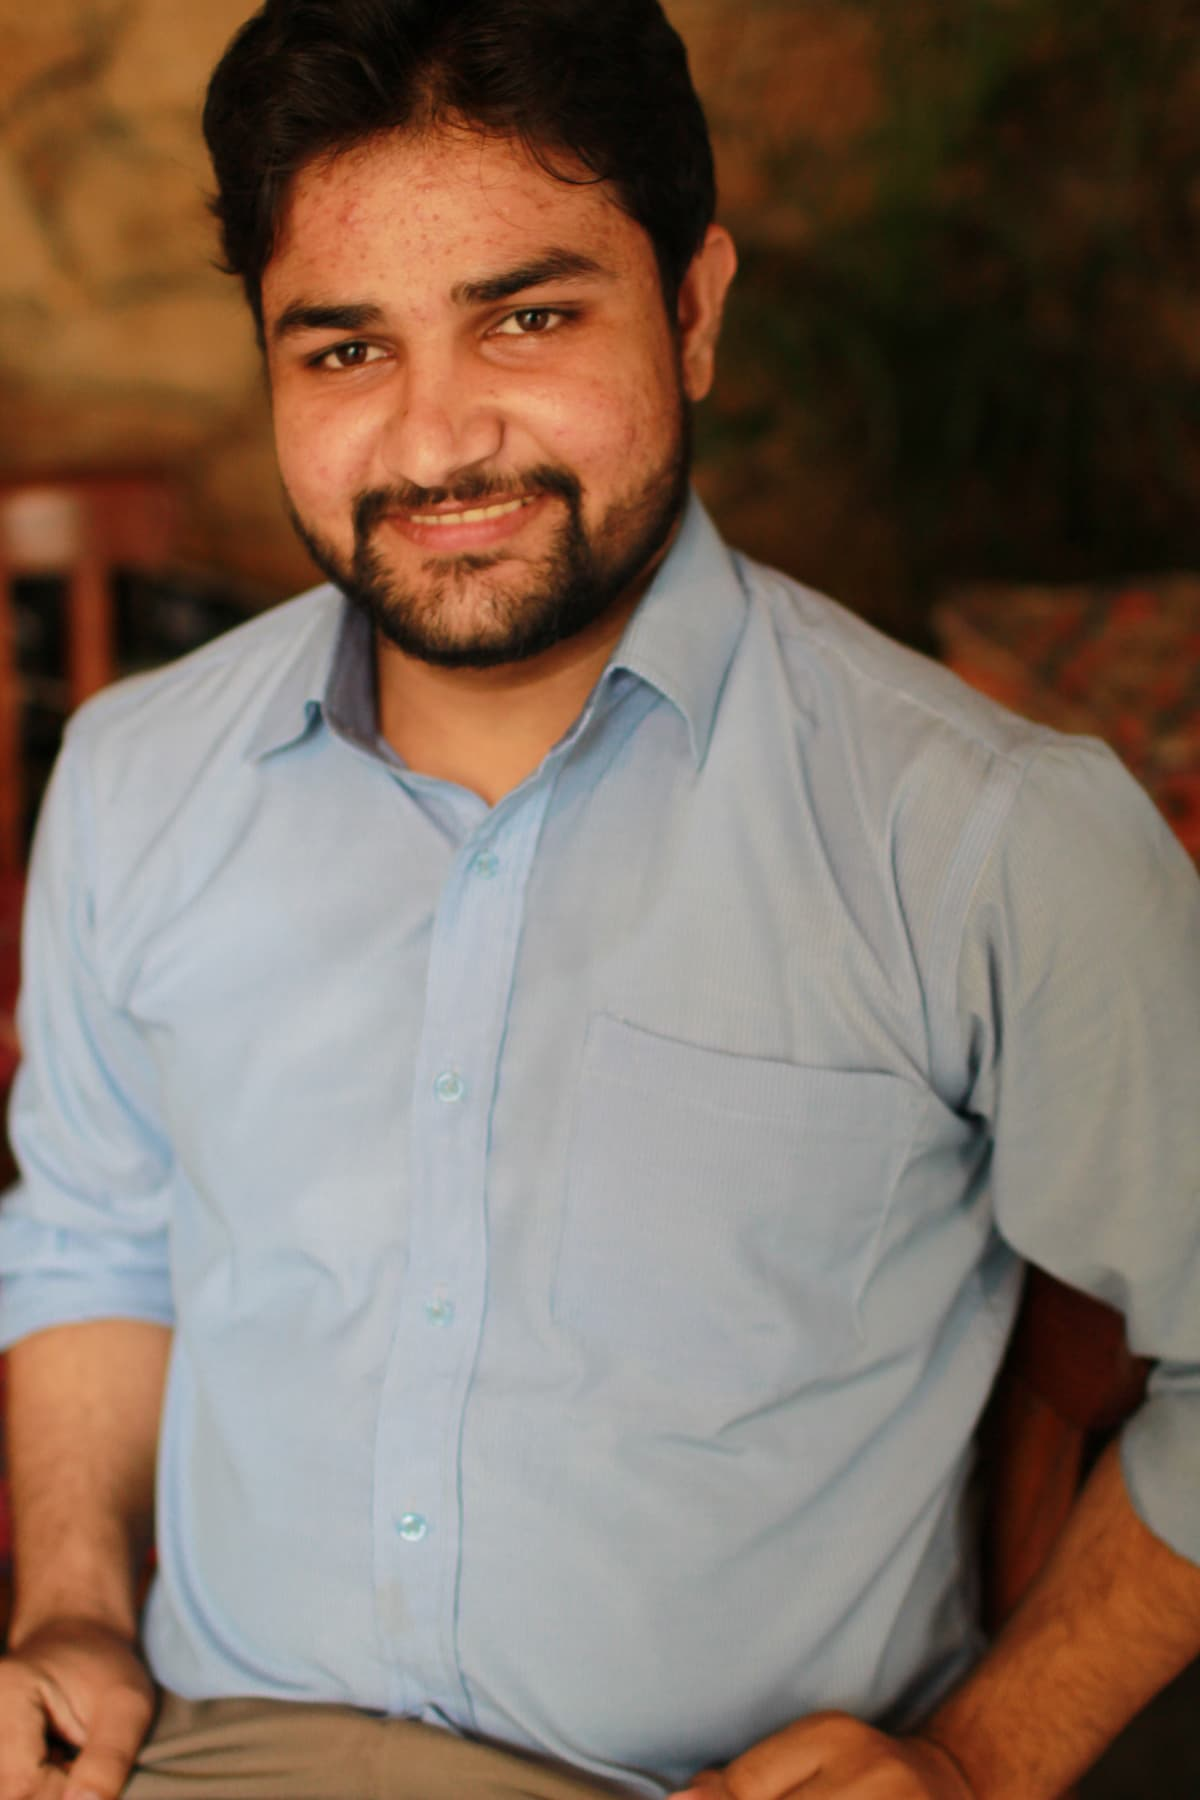 23-year-old Mohammad Waqas is the designer on board for heArtwork projects.